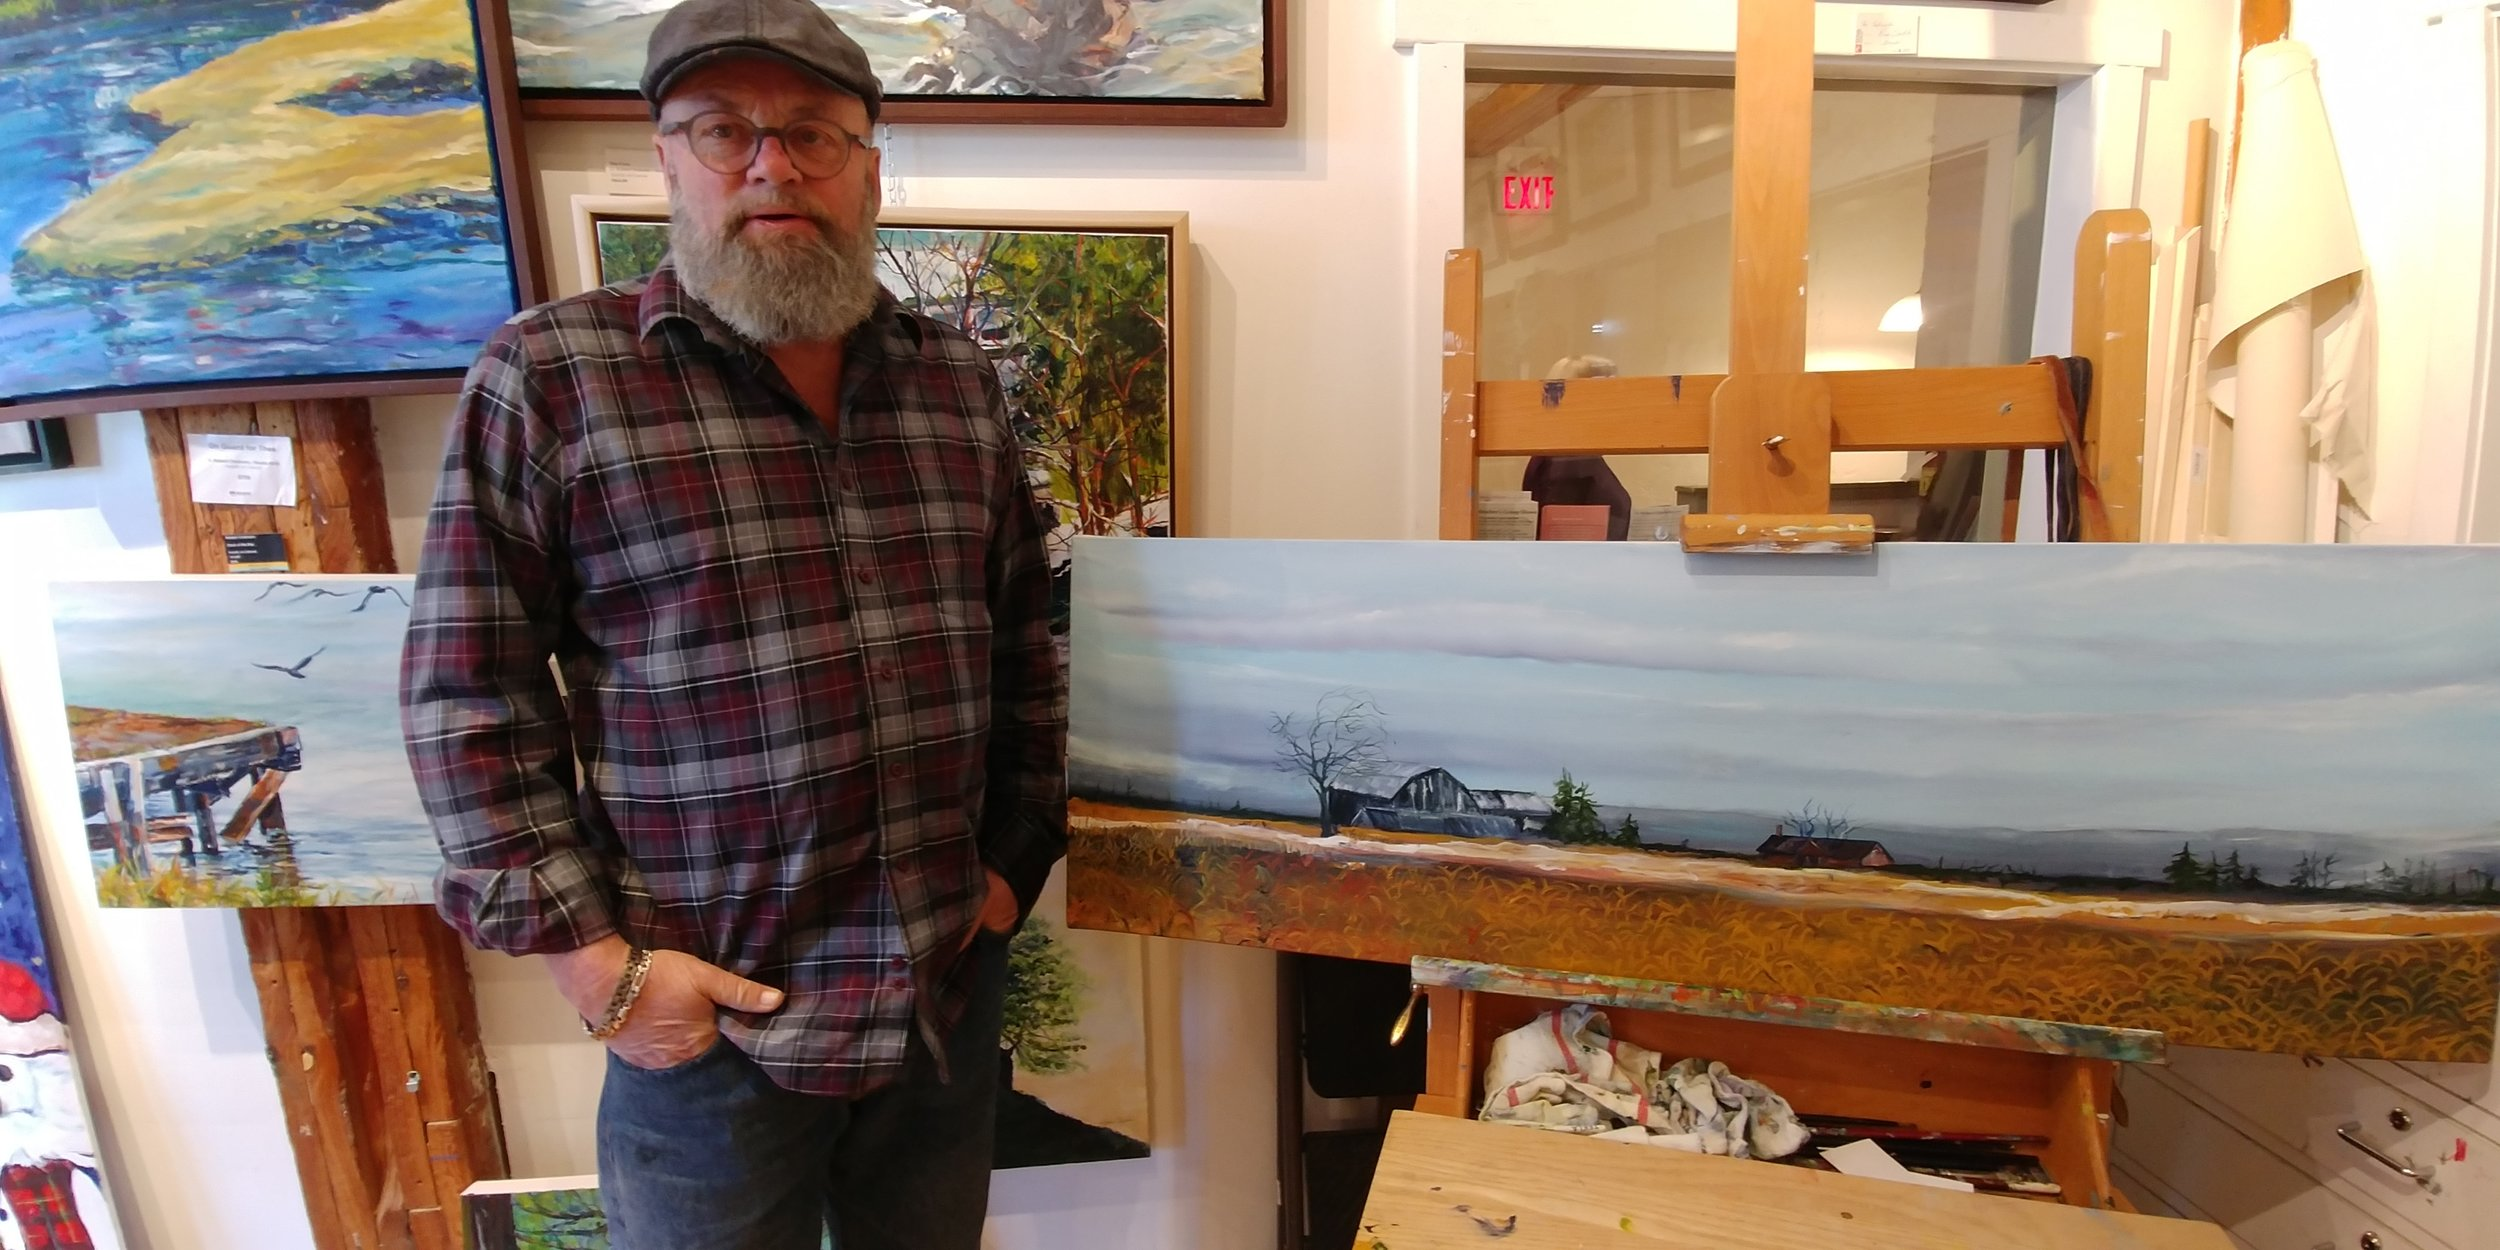 Robert standing beside his almost finished painting.